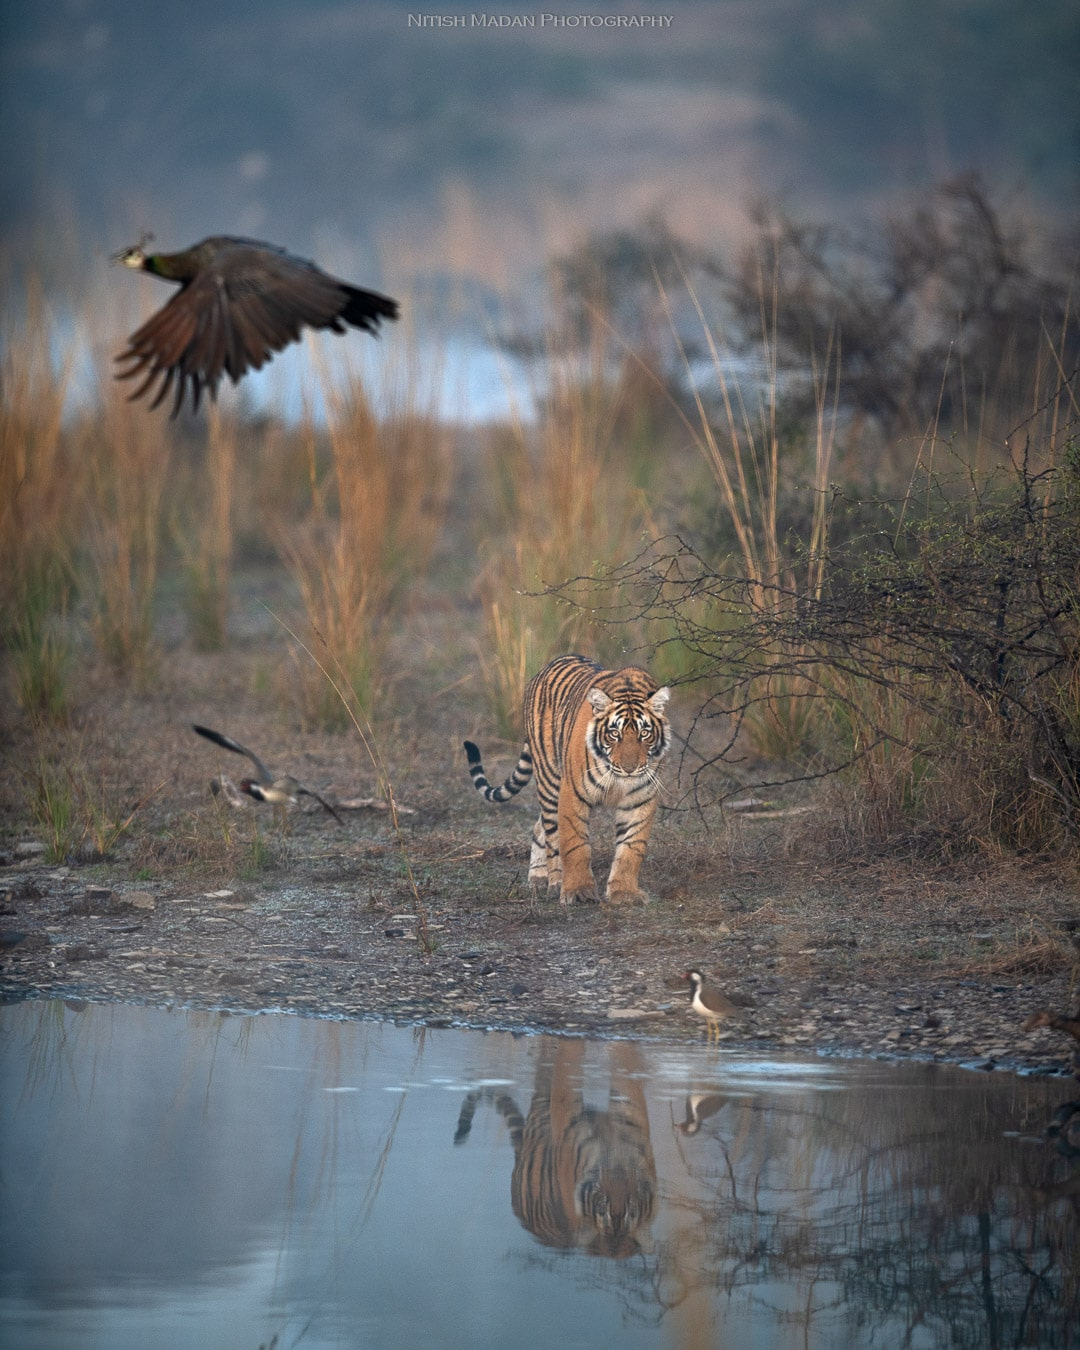 Bengal Tiger at the Ranthambore National Park